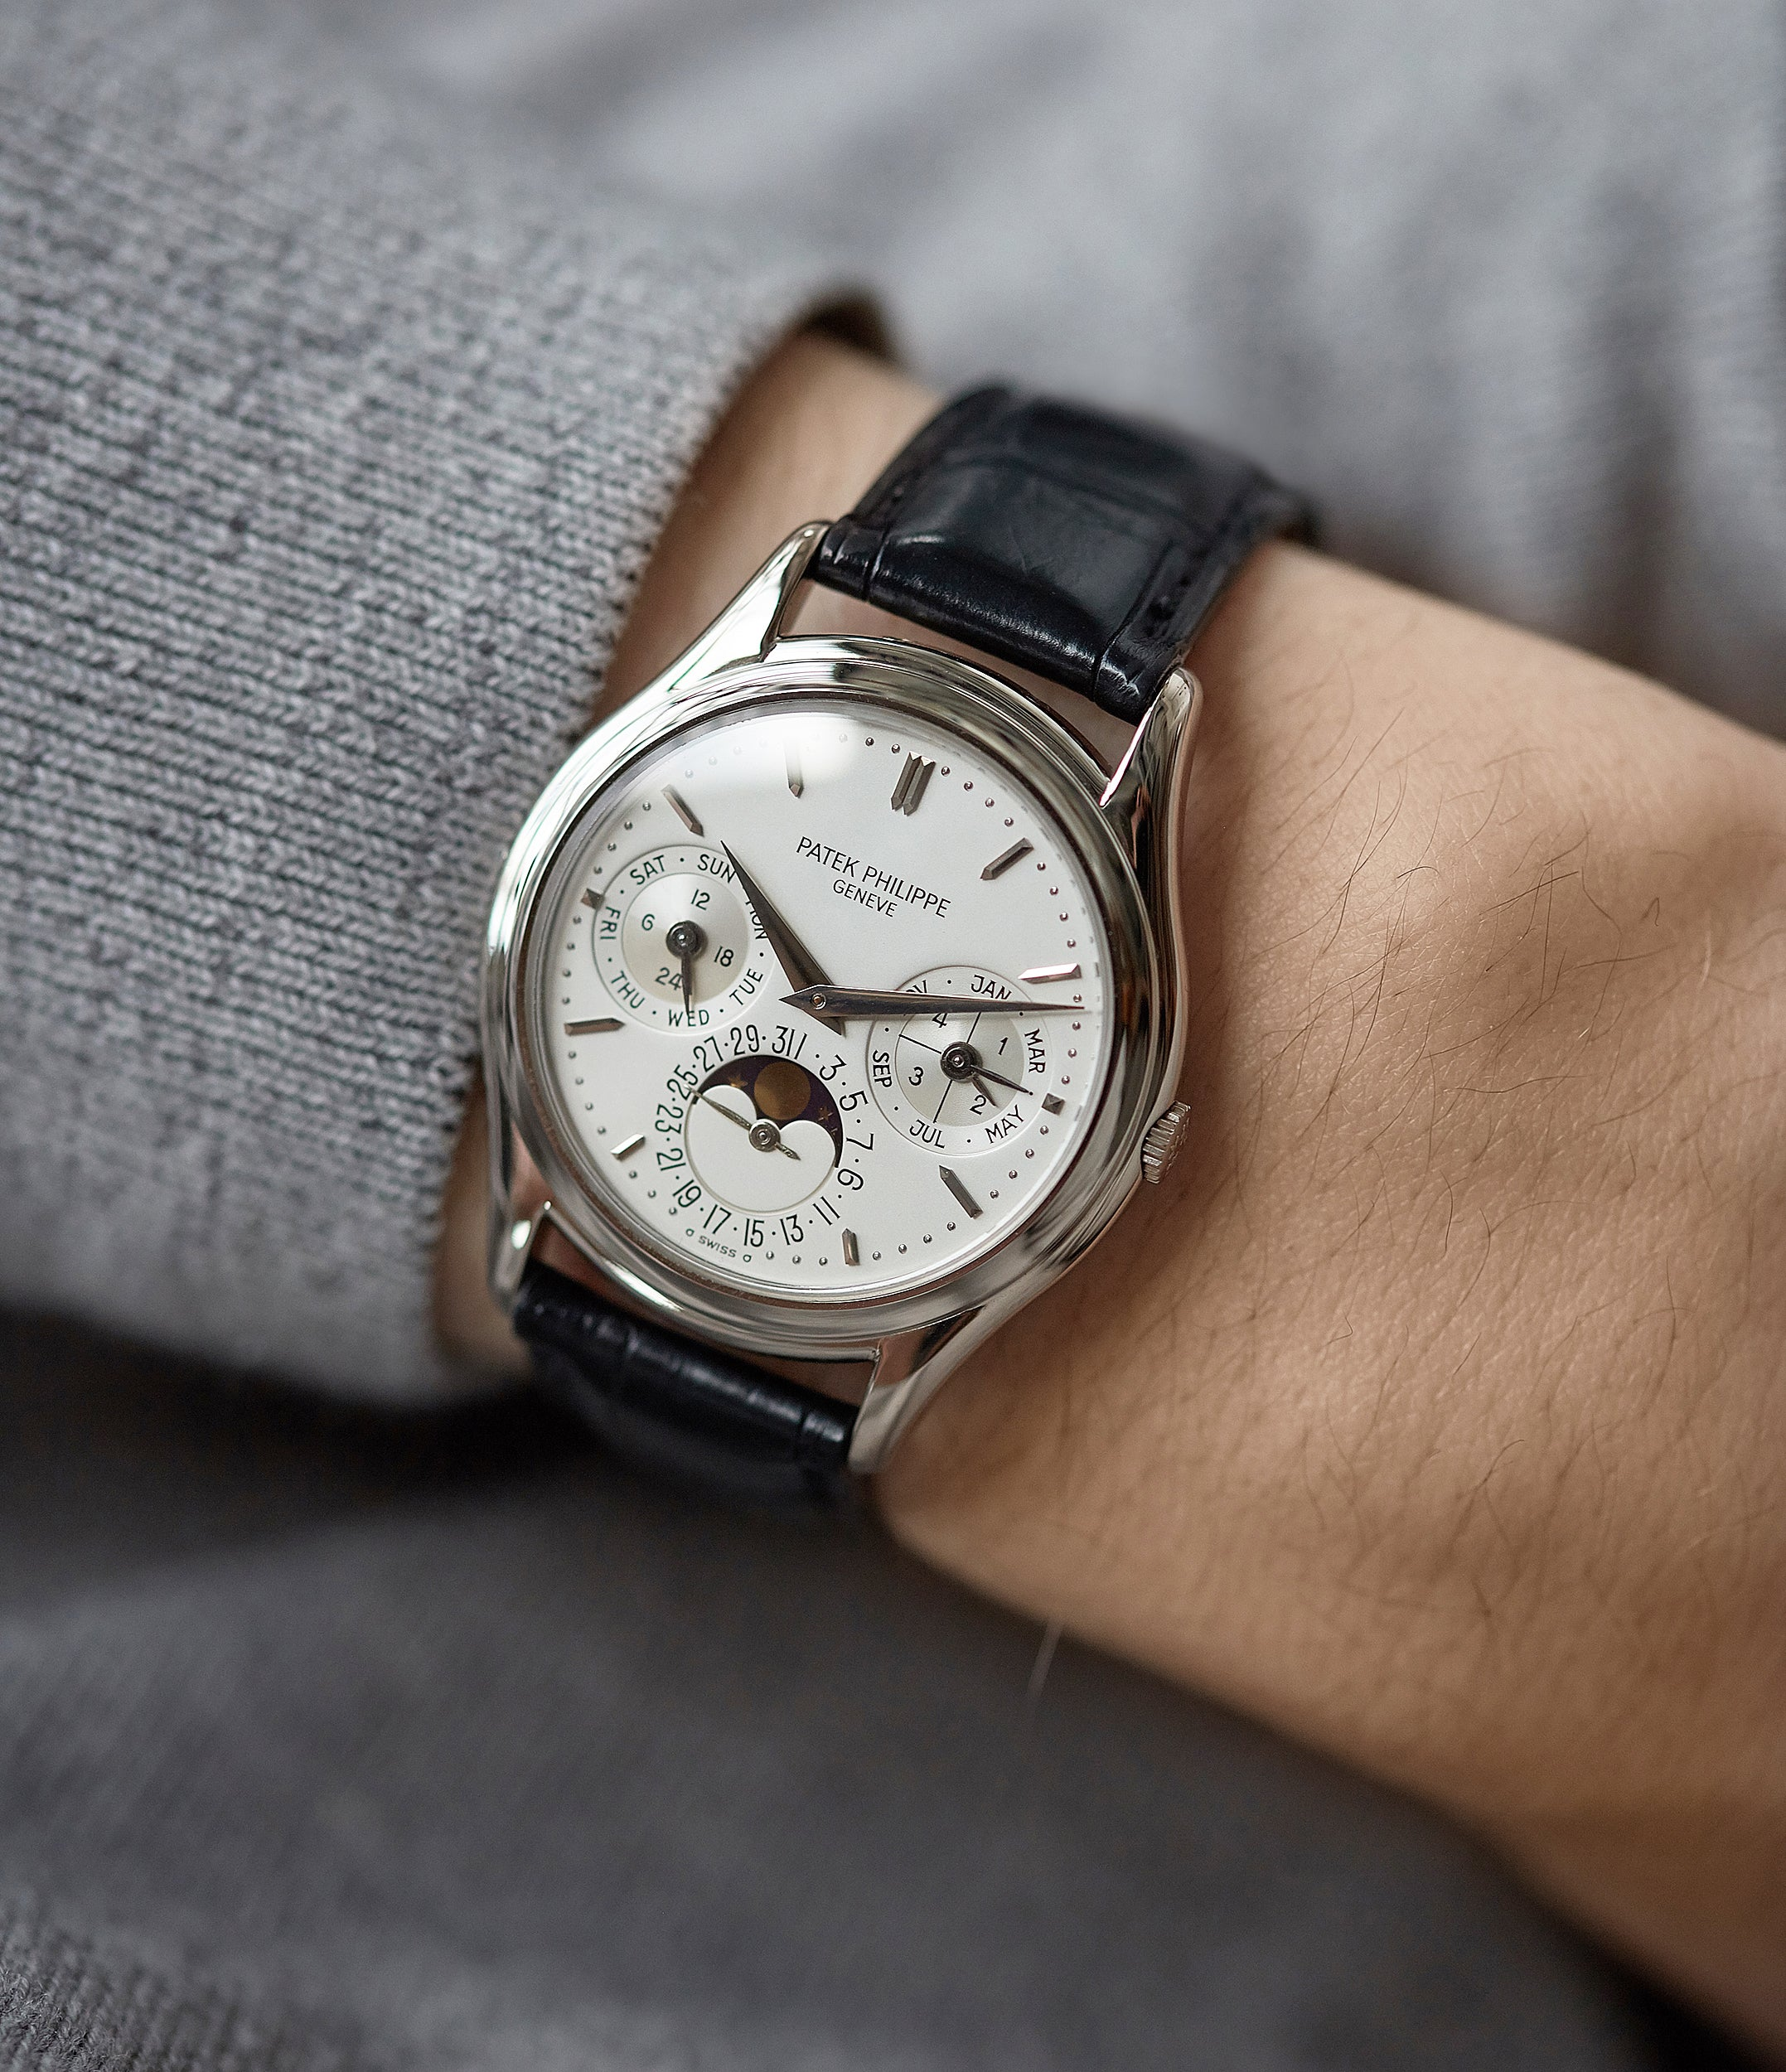 rare Patek Philippe 3940G Perpetual Calendar vintage rare watch English dial for sale online at A Collected Man London UK specialist of rare watches